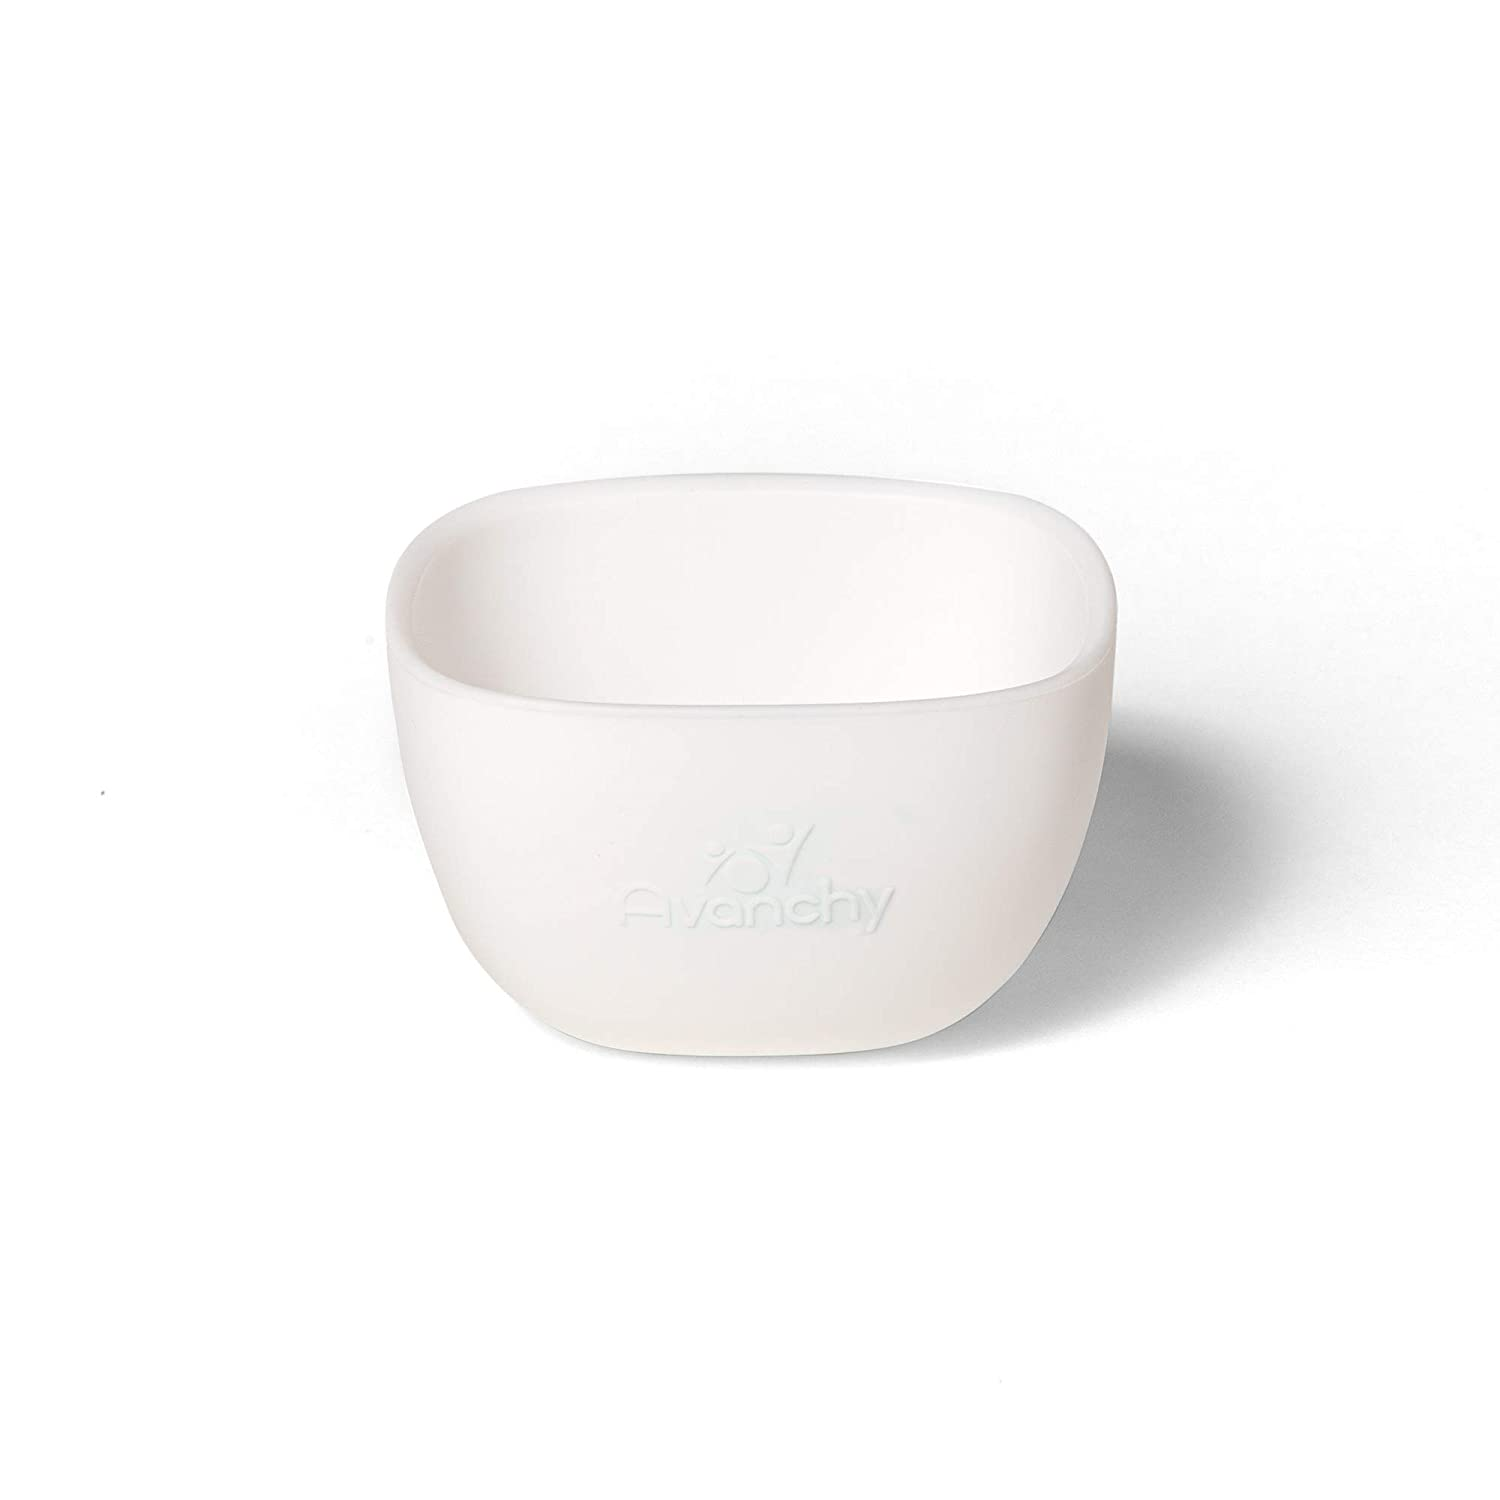 Avanchy Silicone La Petite Mini Silicone Bowl White - Silicone Baby Dishes - Baby Bowl - Silicone Bowl - Baby Dishes Set - Baby Feeding Bowl - Bowls for Toddler